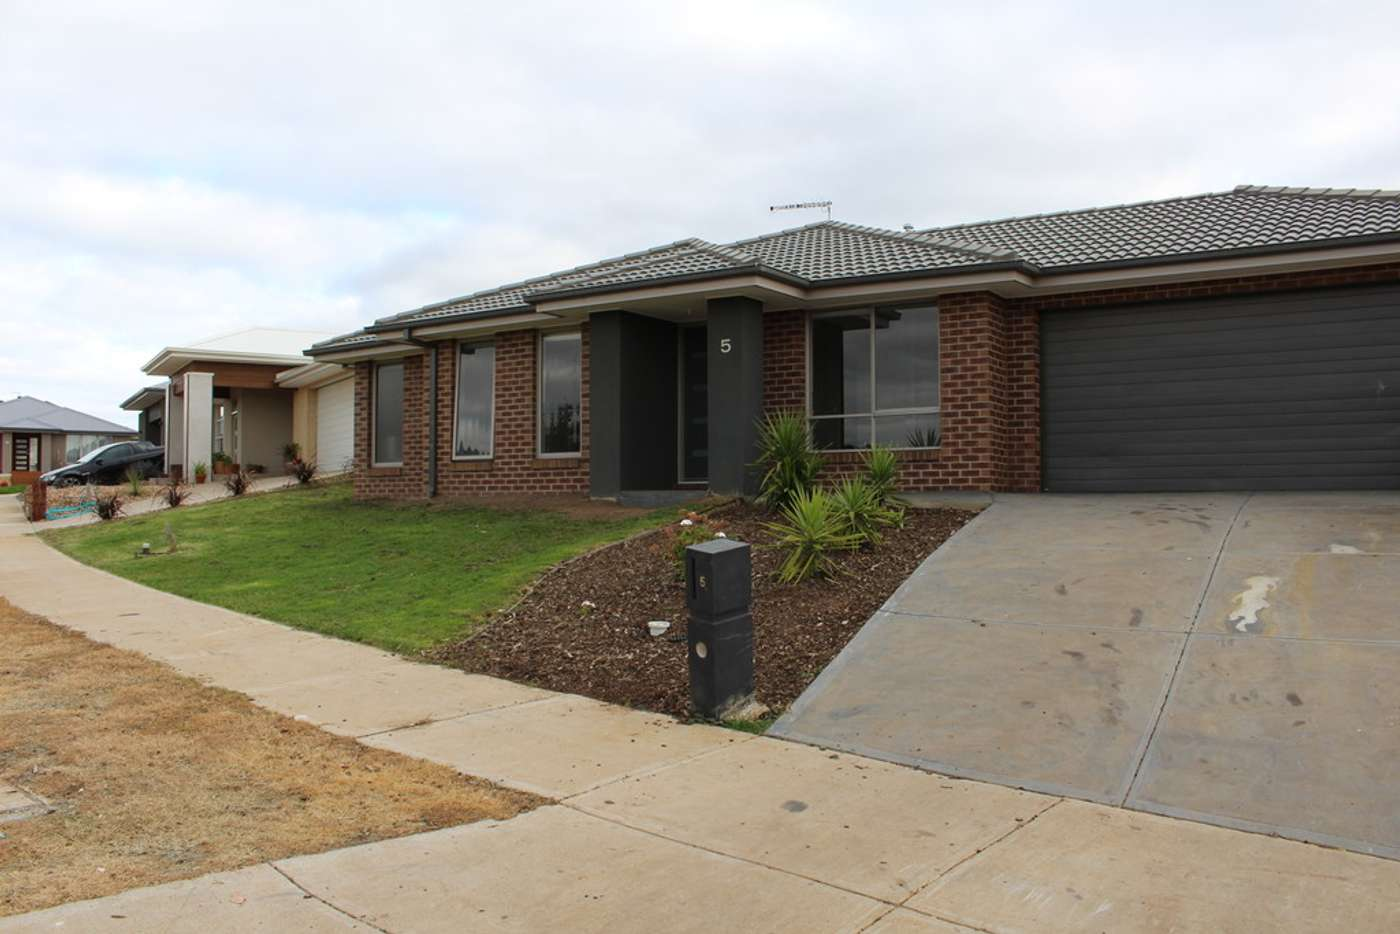 Main view of Homely house listing, 5 Lampton Way, Sunbury VIC 3429